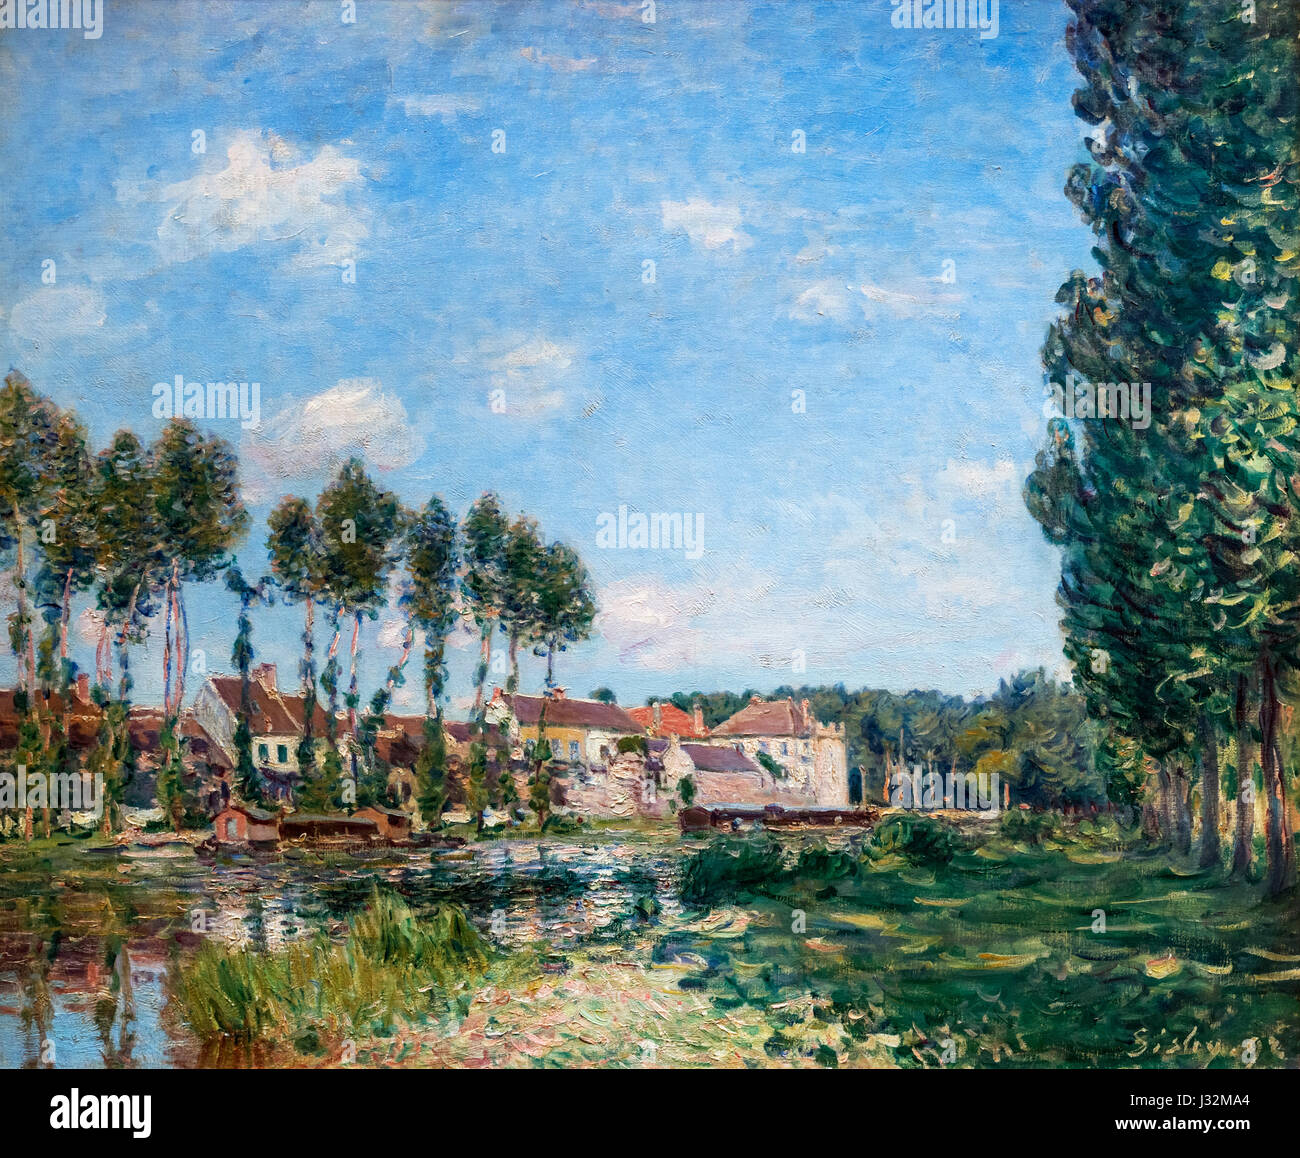 "Alfred Sisley. Painting entitled ""Moret, Bords du Laing"" by Alfred Sisley (1839-1899), oil on canvas, 1892 Stock Photo"